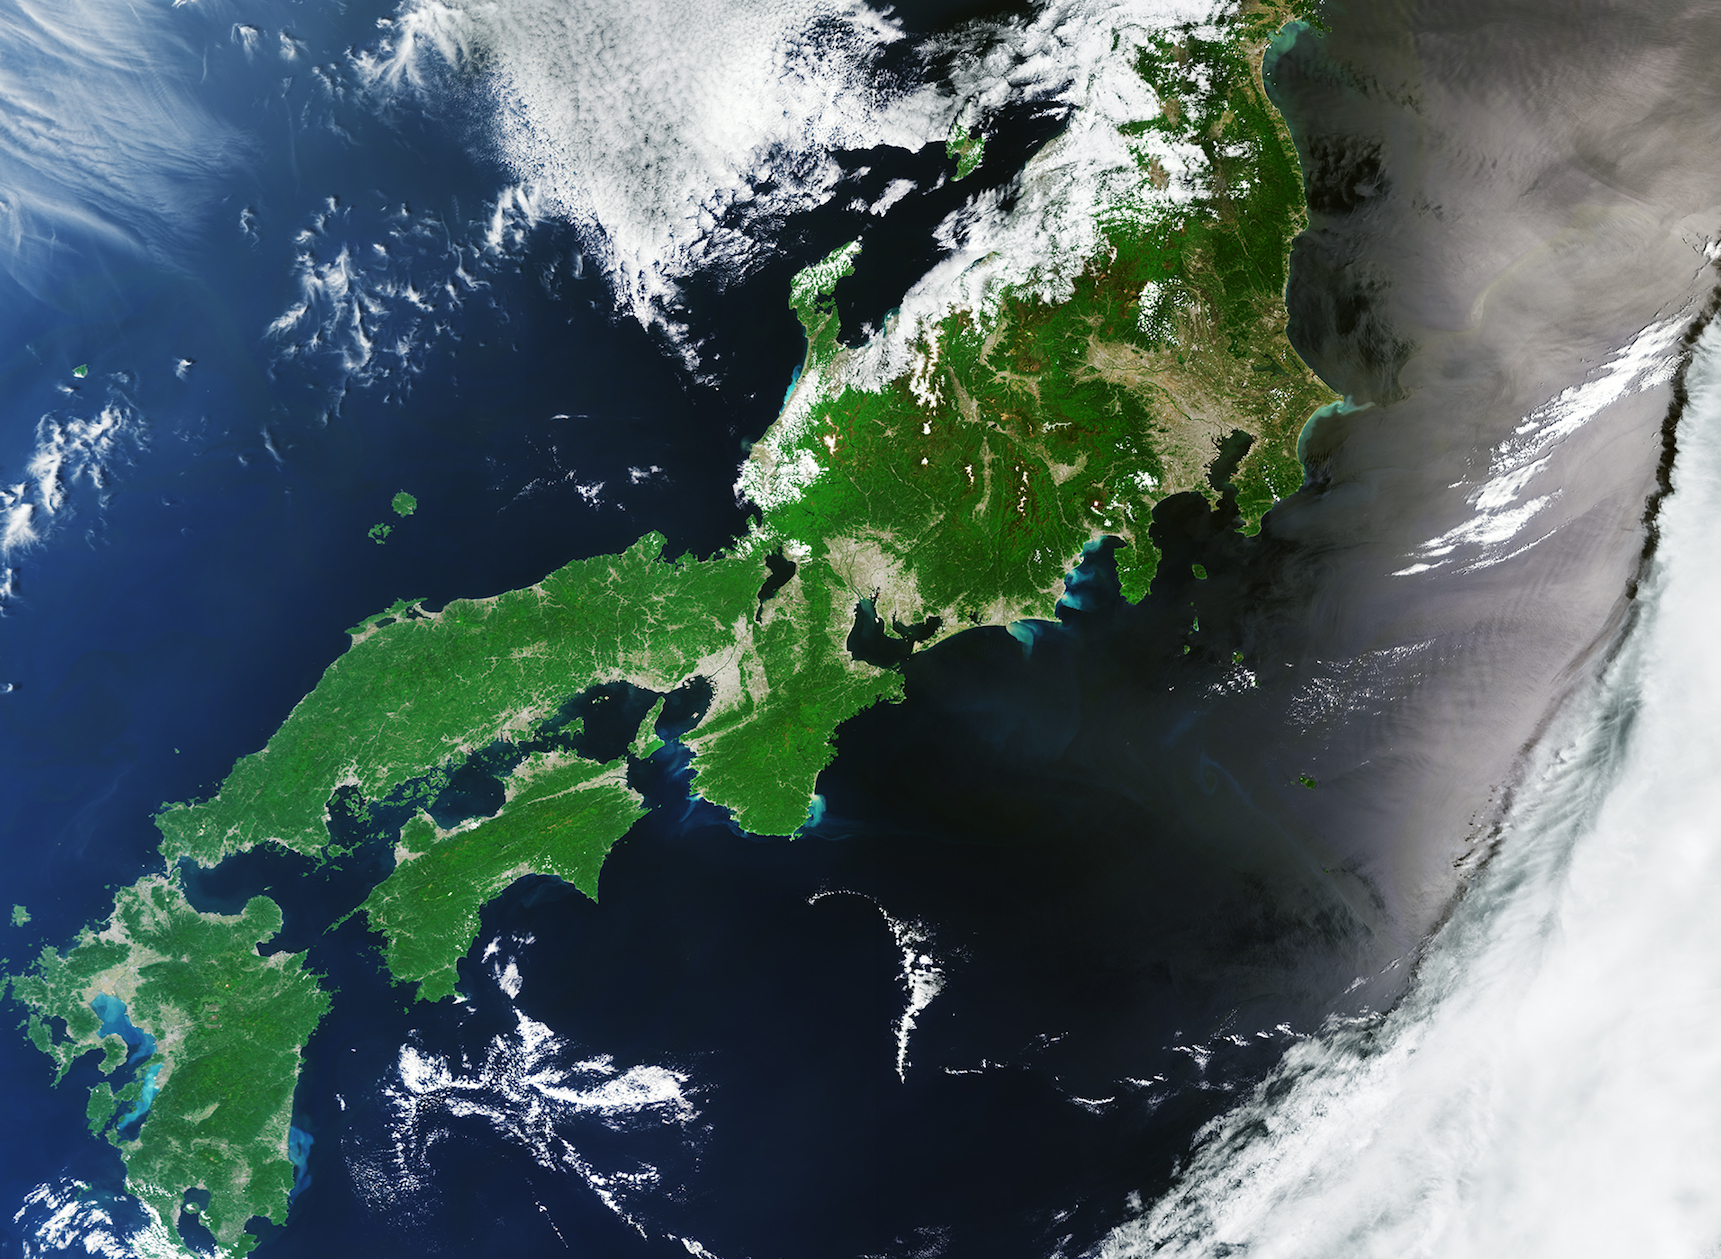 Today's Image of the Day comes from the European Space Agency (ESA) and features a look at Japan and the surrounding Pacific Ocean waters.